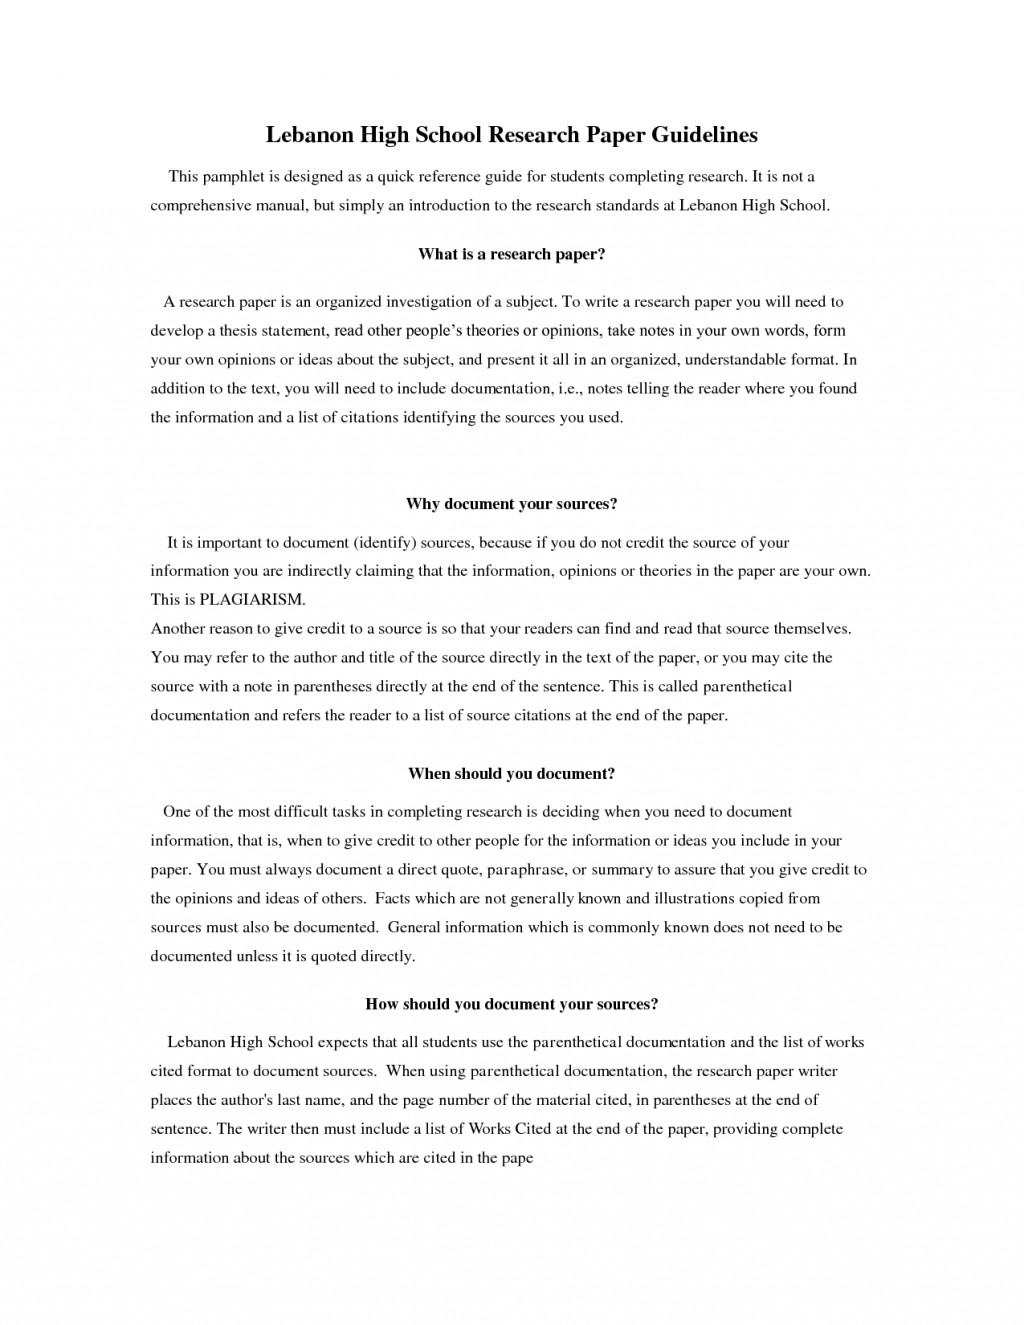 024 Research Paper Good Singular Topic Topics History Reddit Argumentative About Sports Large